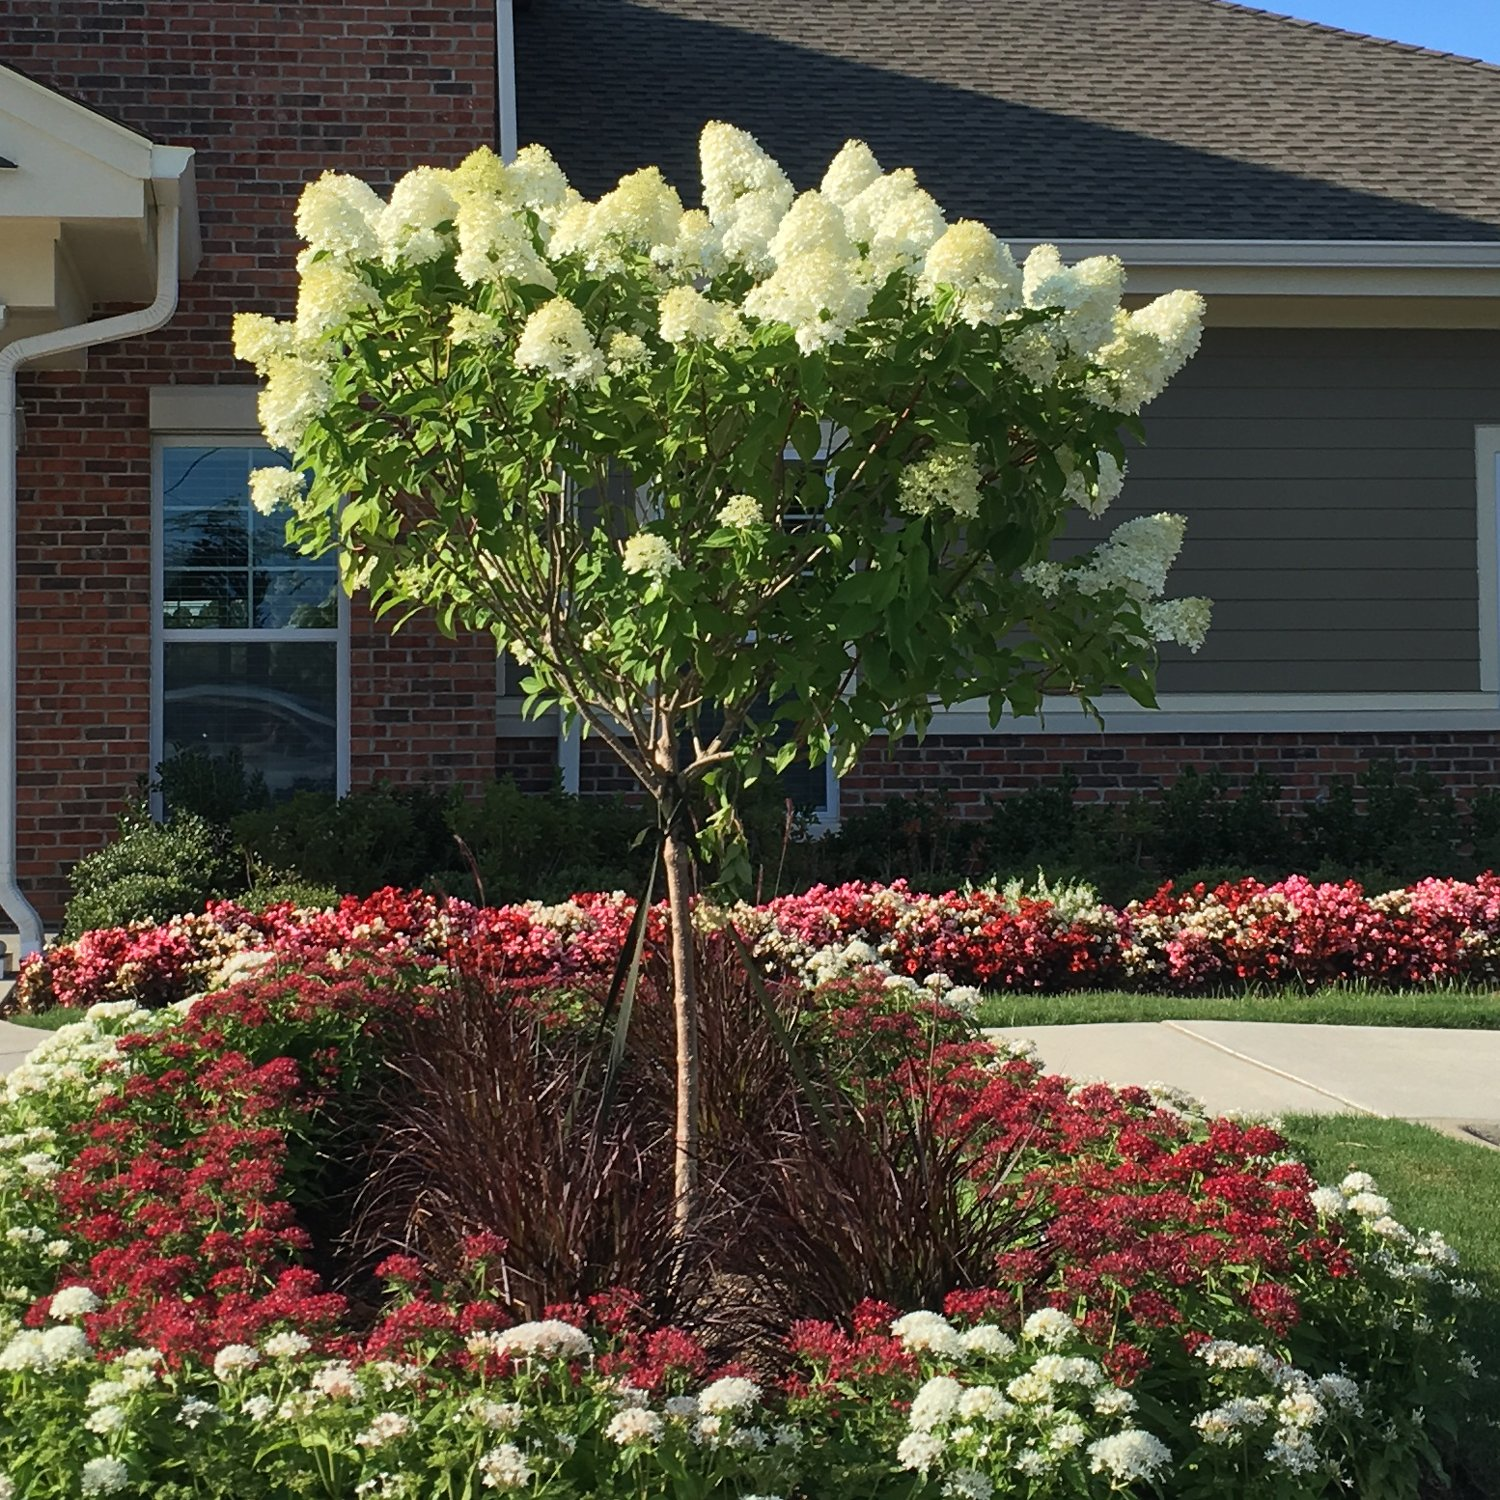 Limelight Hydrangea Tree by Brighter Blooms (Image #3)